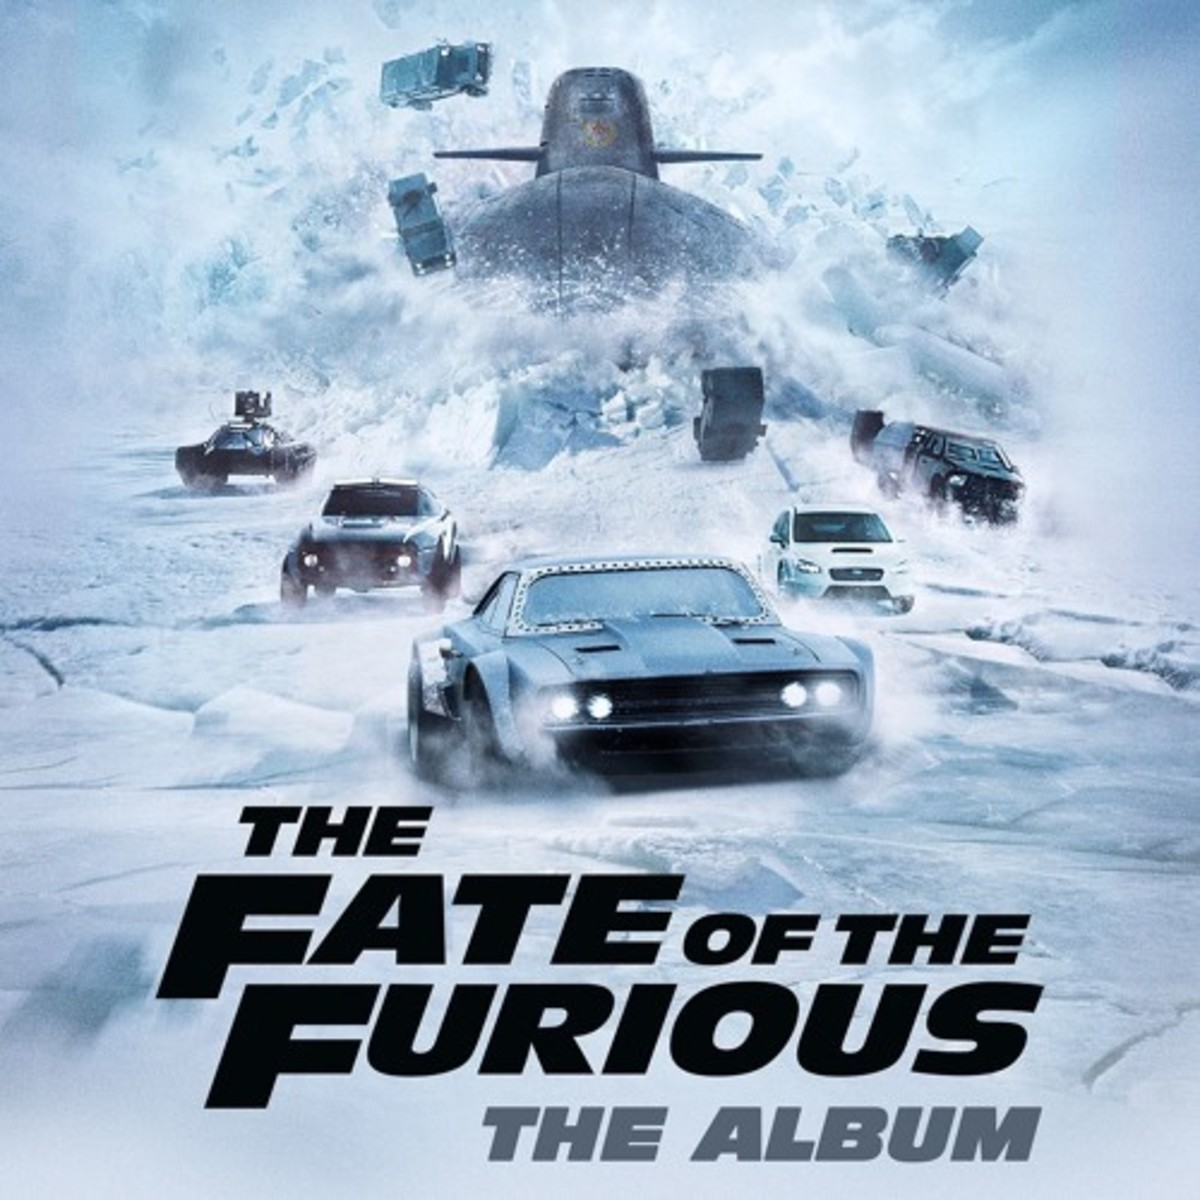 the-fate-of-furious-the-album.jpg